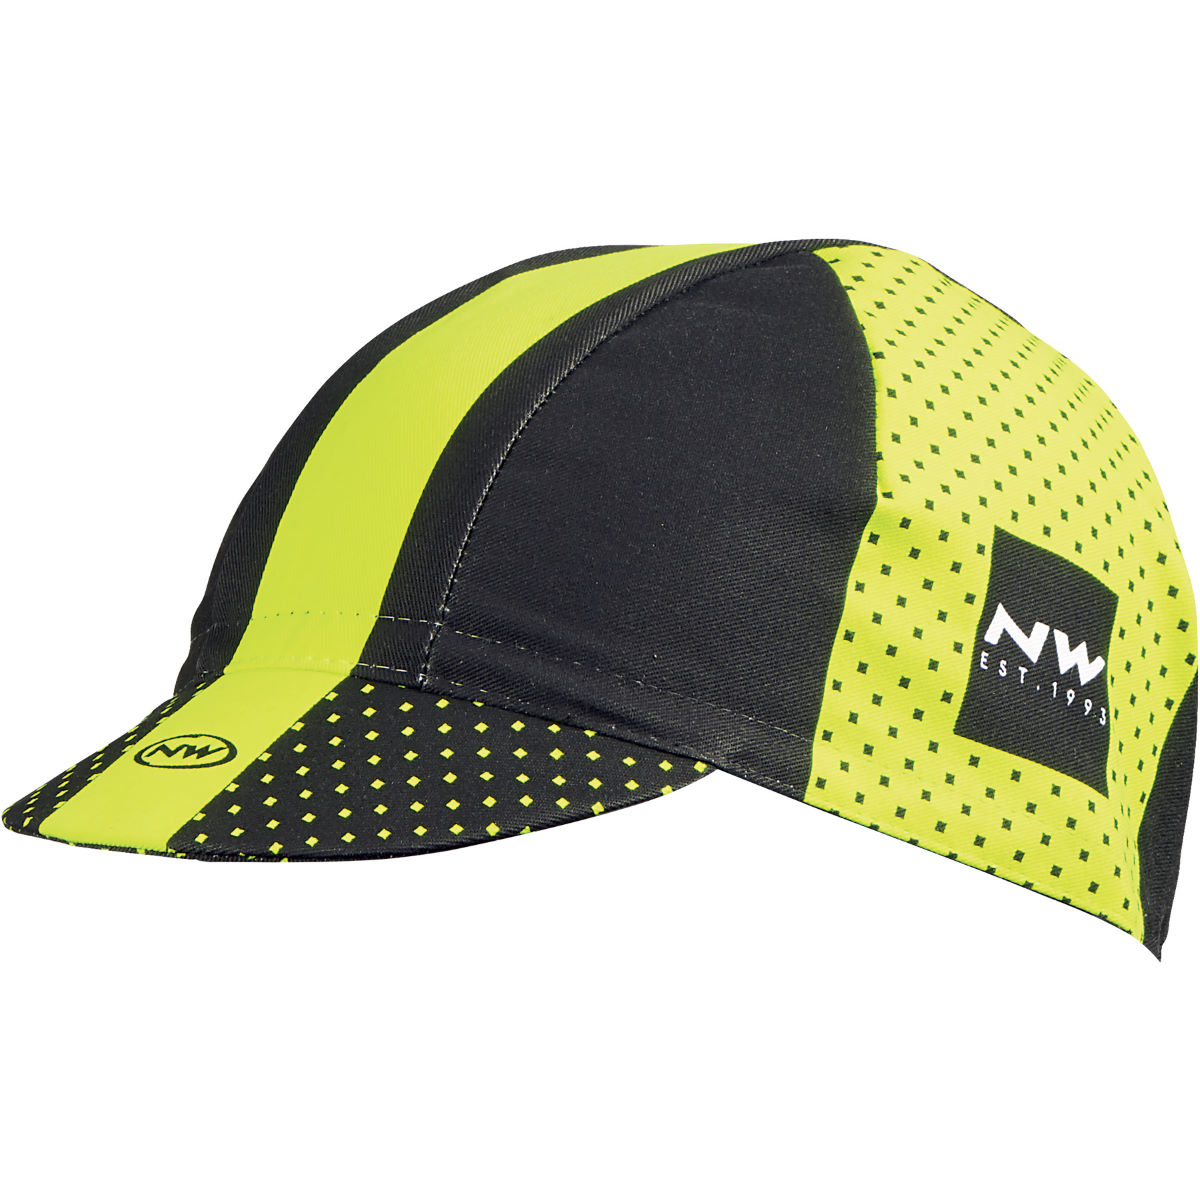 Northwave Switch Line Cap - One Size Black/Yellow Fluo Casquettes, bonnets et autres - Cyclisme